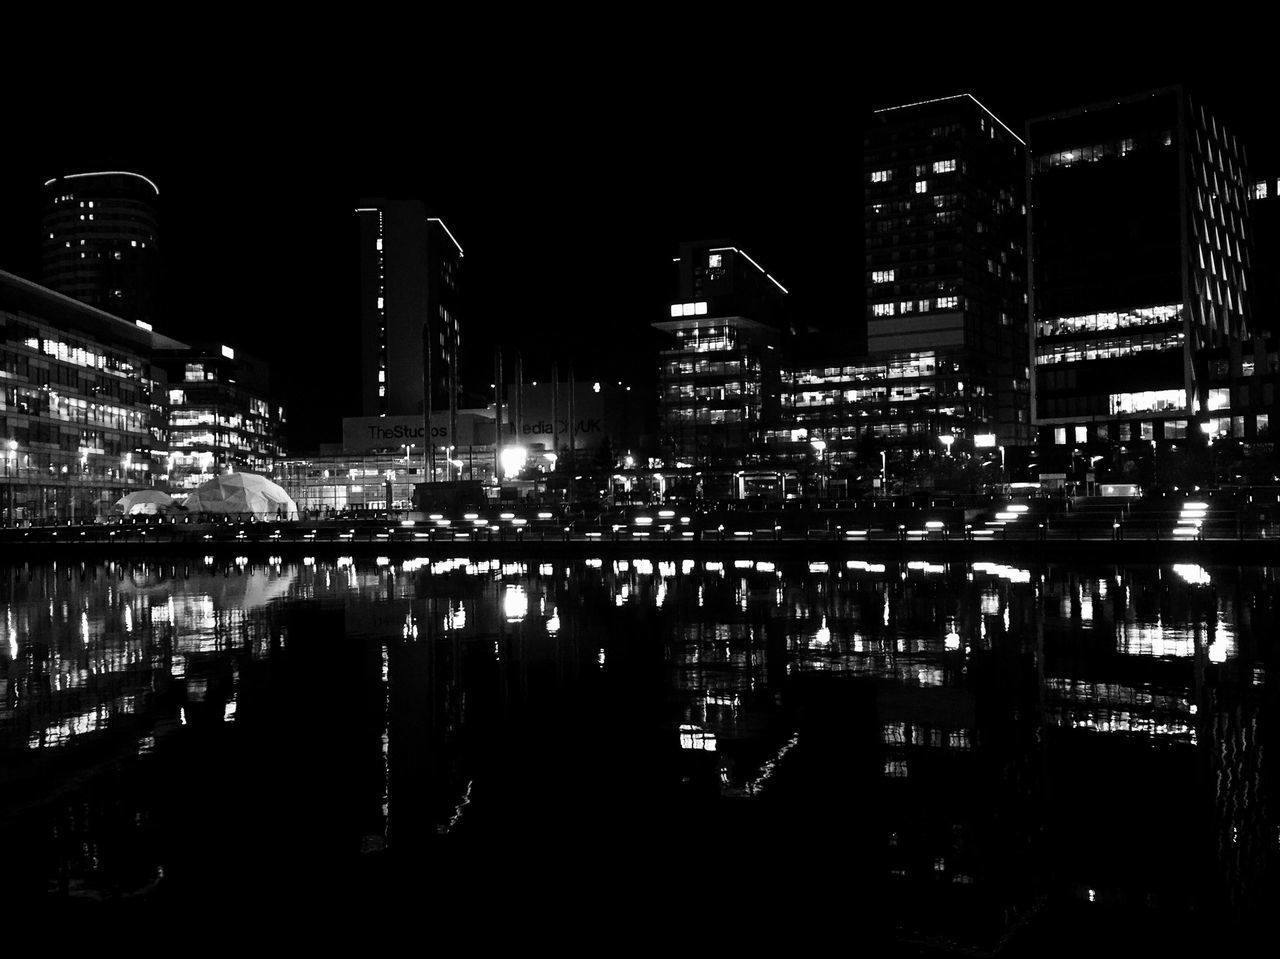 Media City Night Lights. Embrace Urban Life Reflection Architecture Night Water Building Exterior Illuminated City Built Structure Travel Destinations Sky Waterfront No People Outdoors Night Lights Silhouette Architecture EyeEm Gallery Mediacityuk Salford Quays EyeEm Masterclass Getty X EyeEm Skyscraper Cityscape Urban Skyline